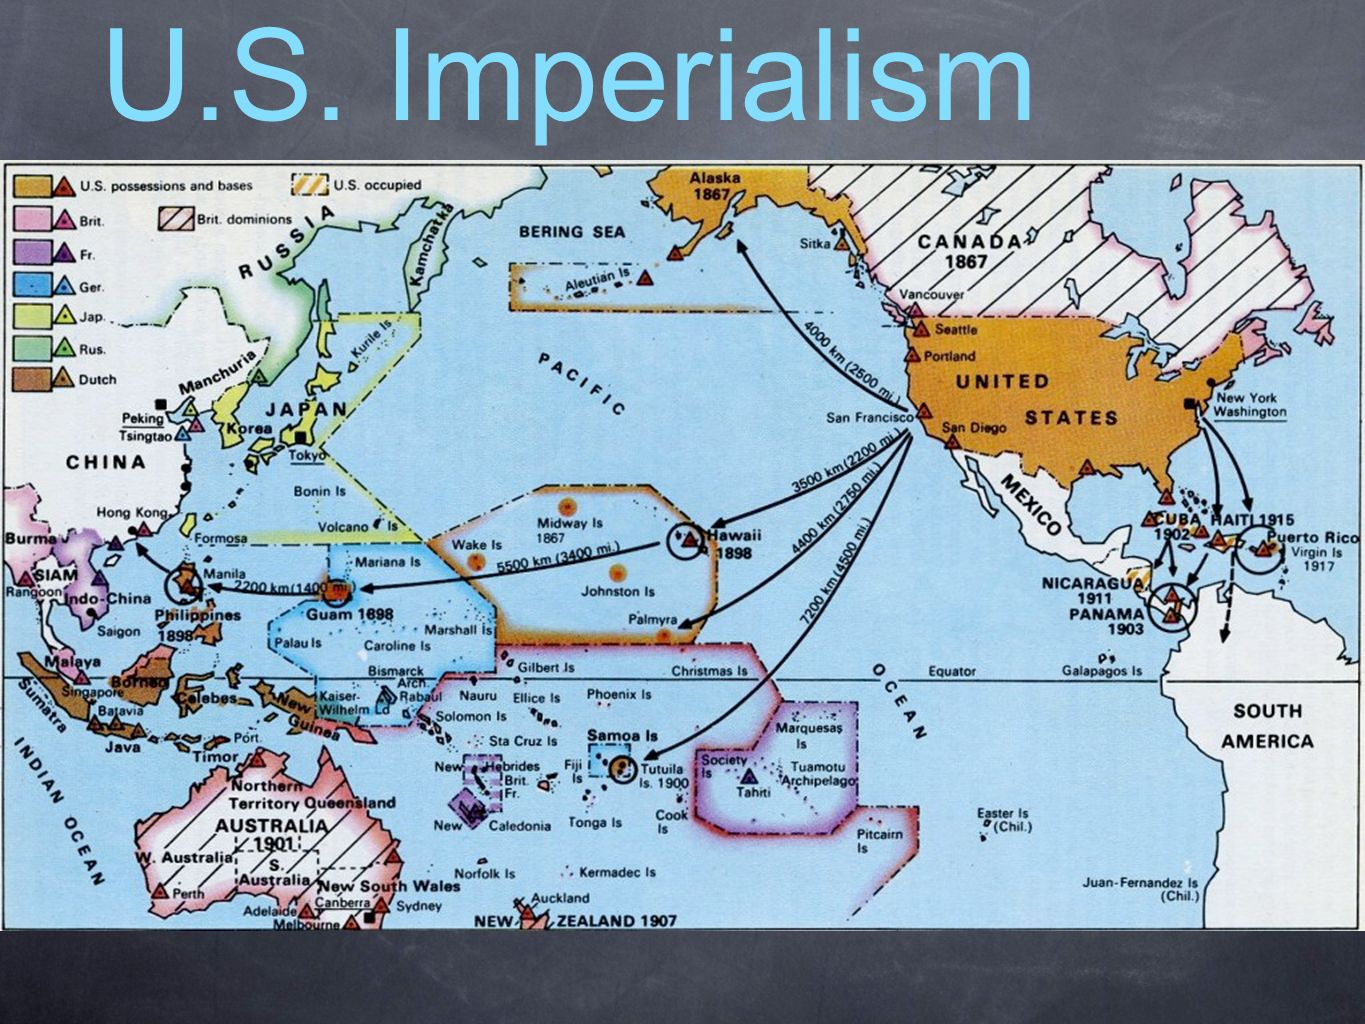 U.S. enters the imperialism game...they did enter a little late ...